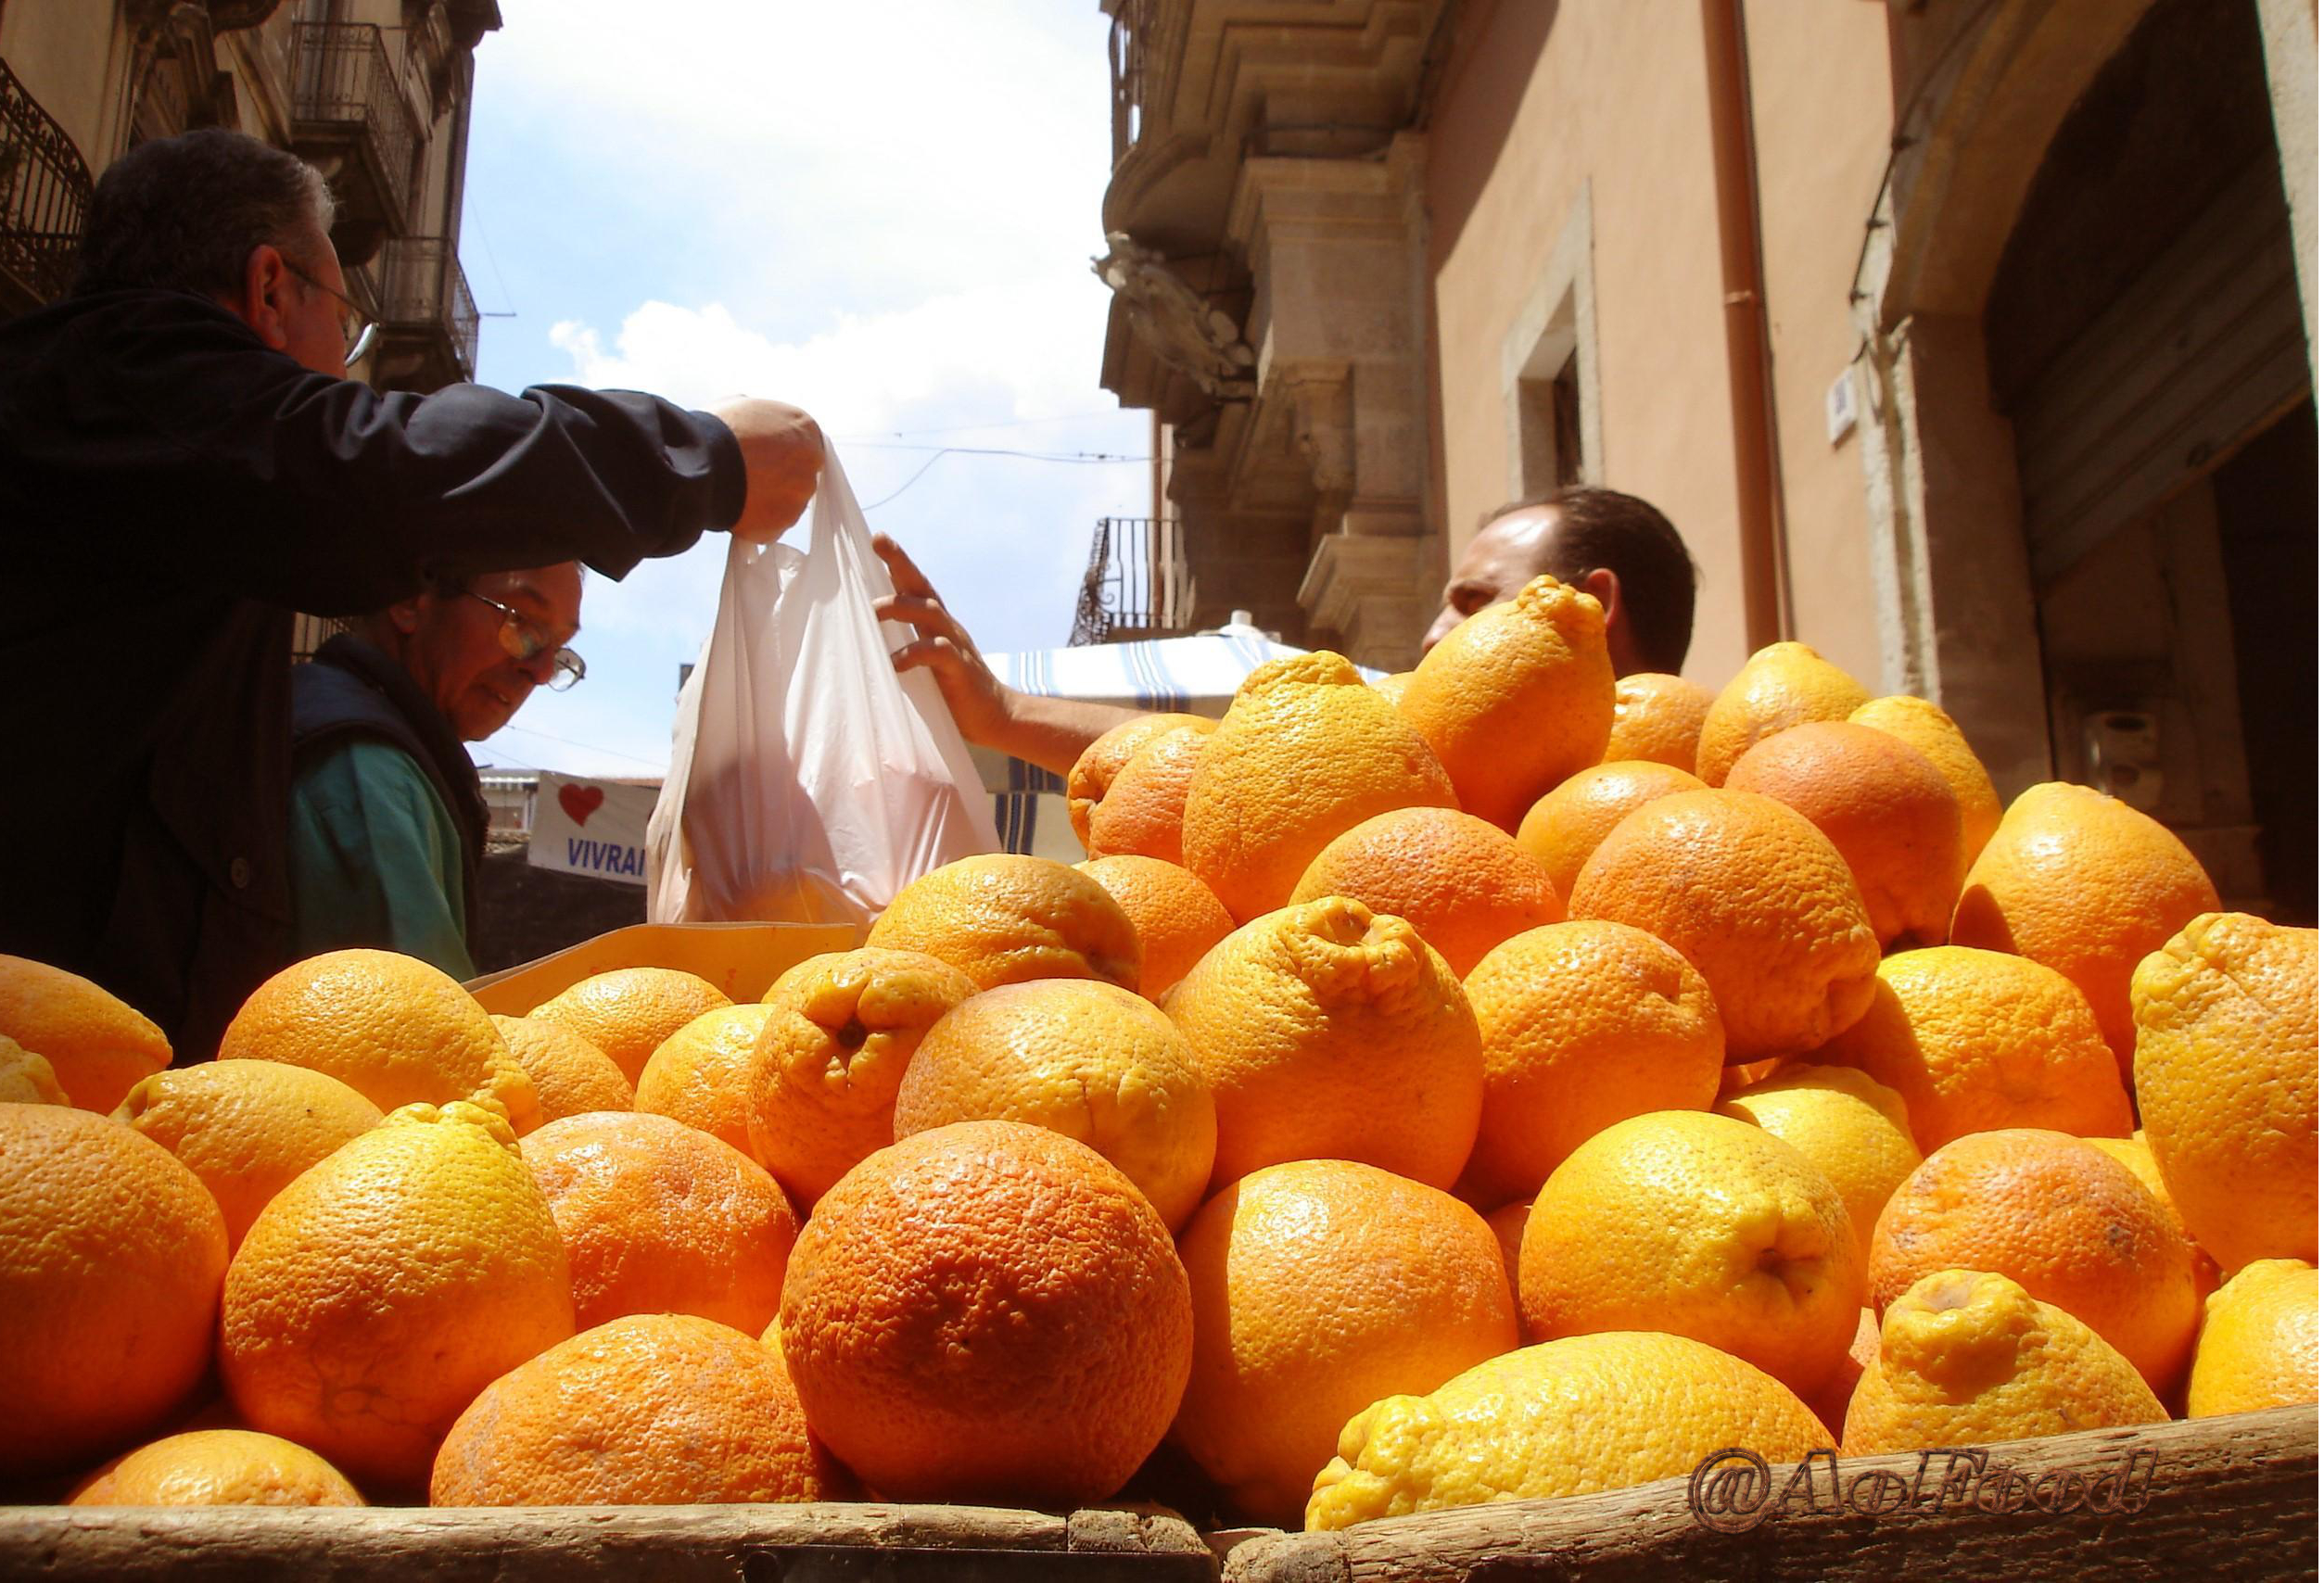 The Significance Of Landscape In A Sicilian Food Market